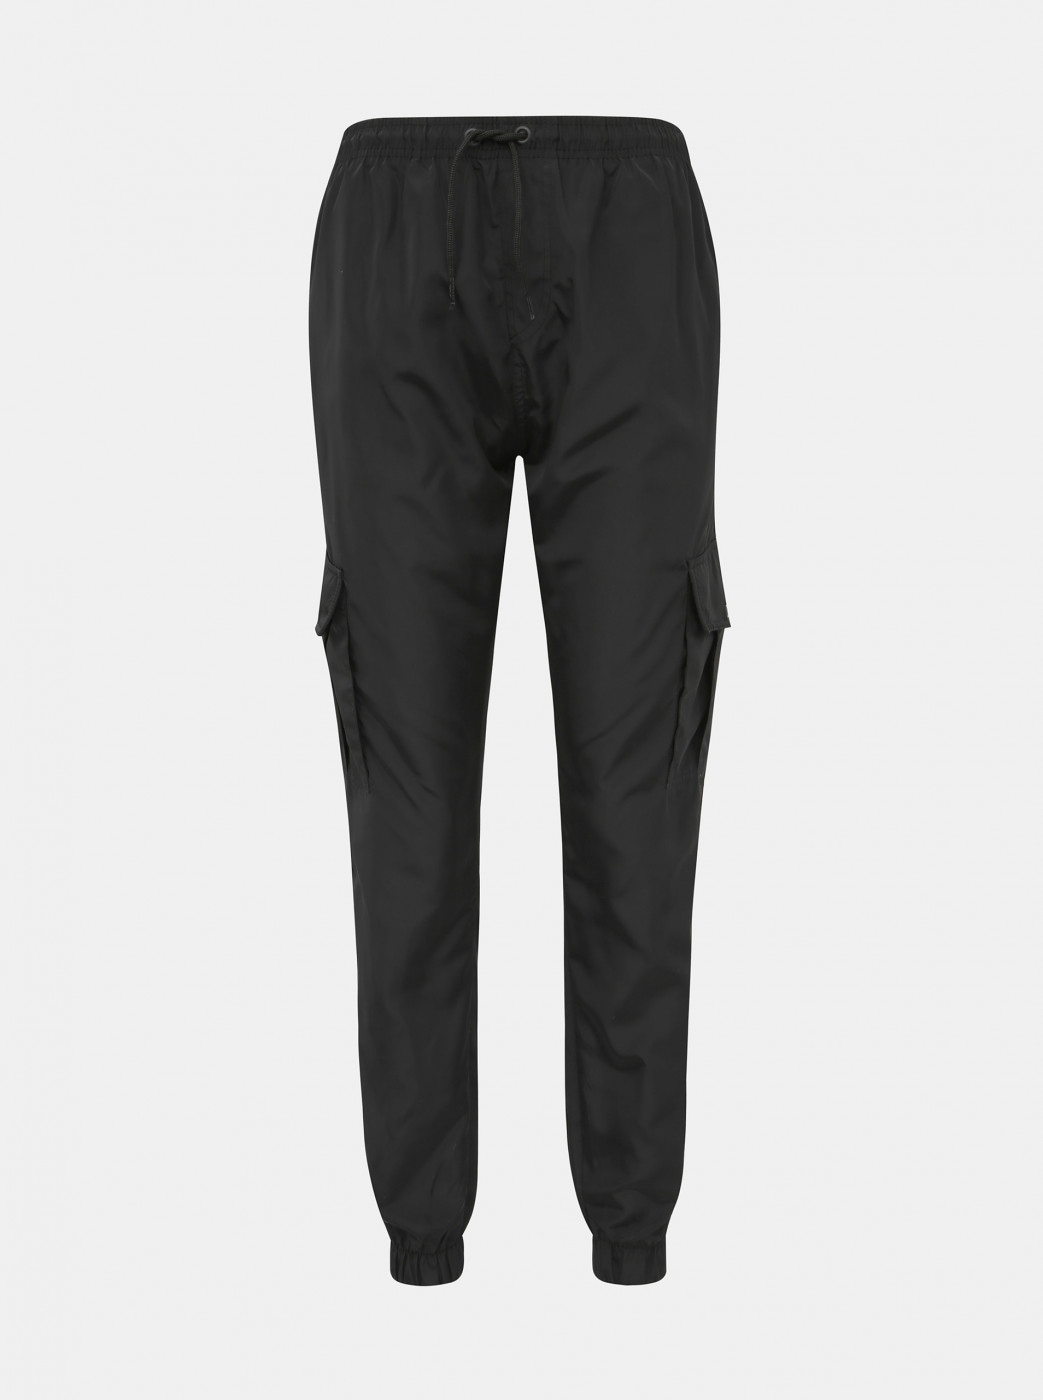 Black Women's Rusty Pants with Haily's Track Pockets